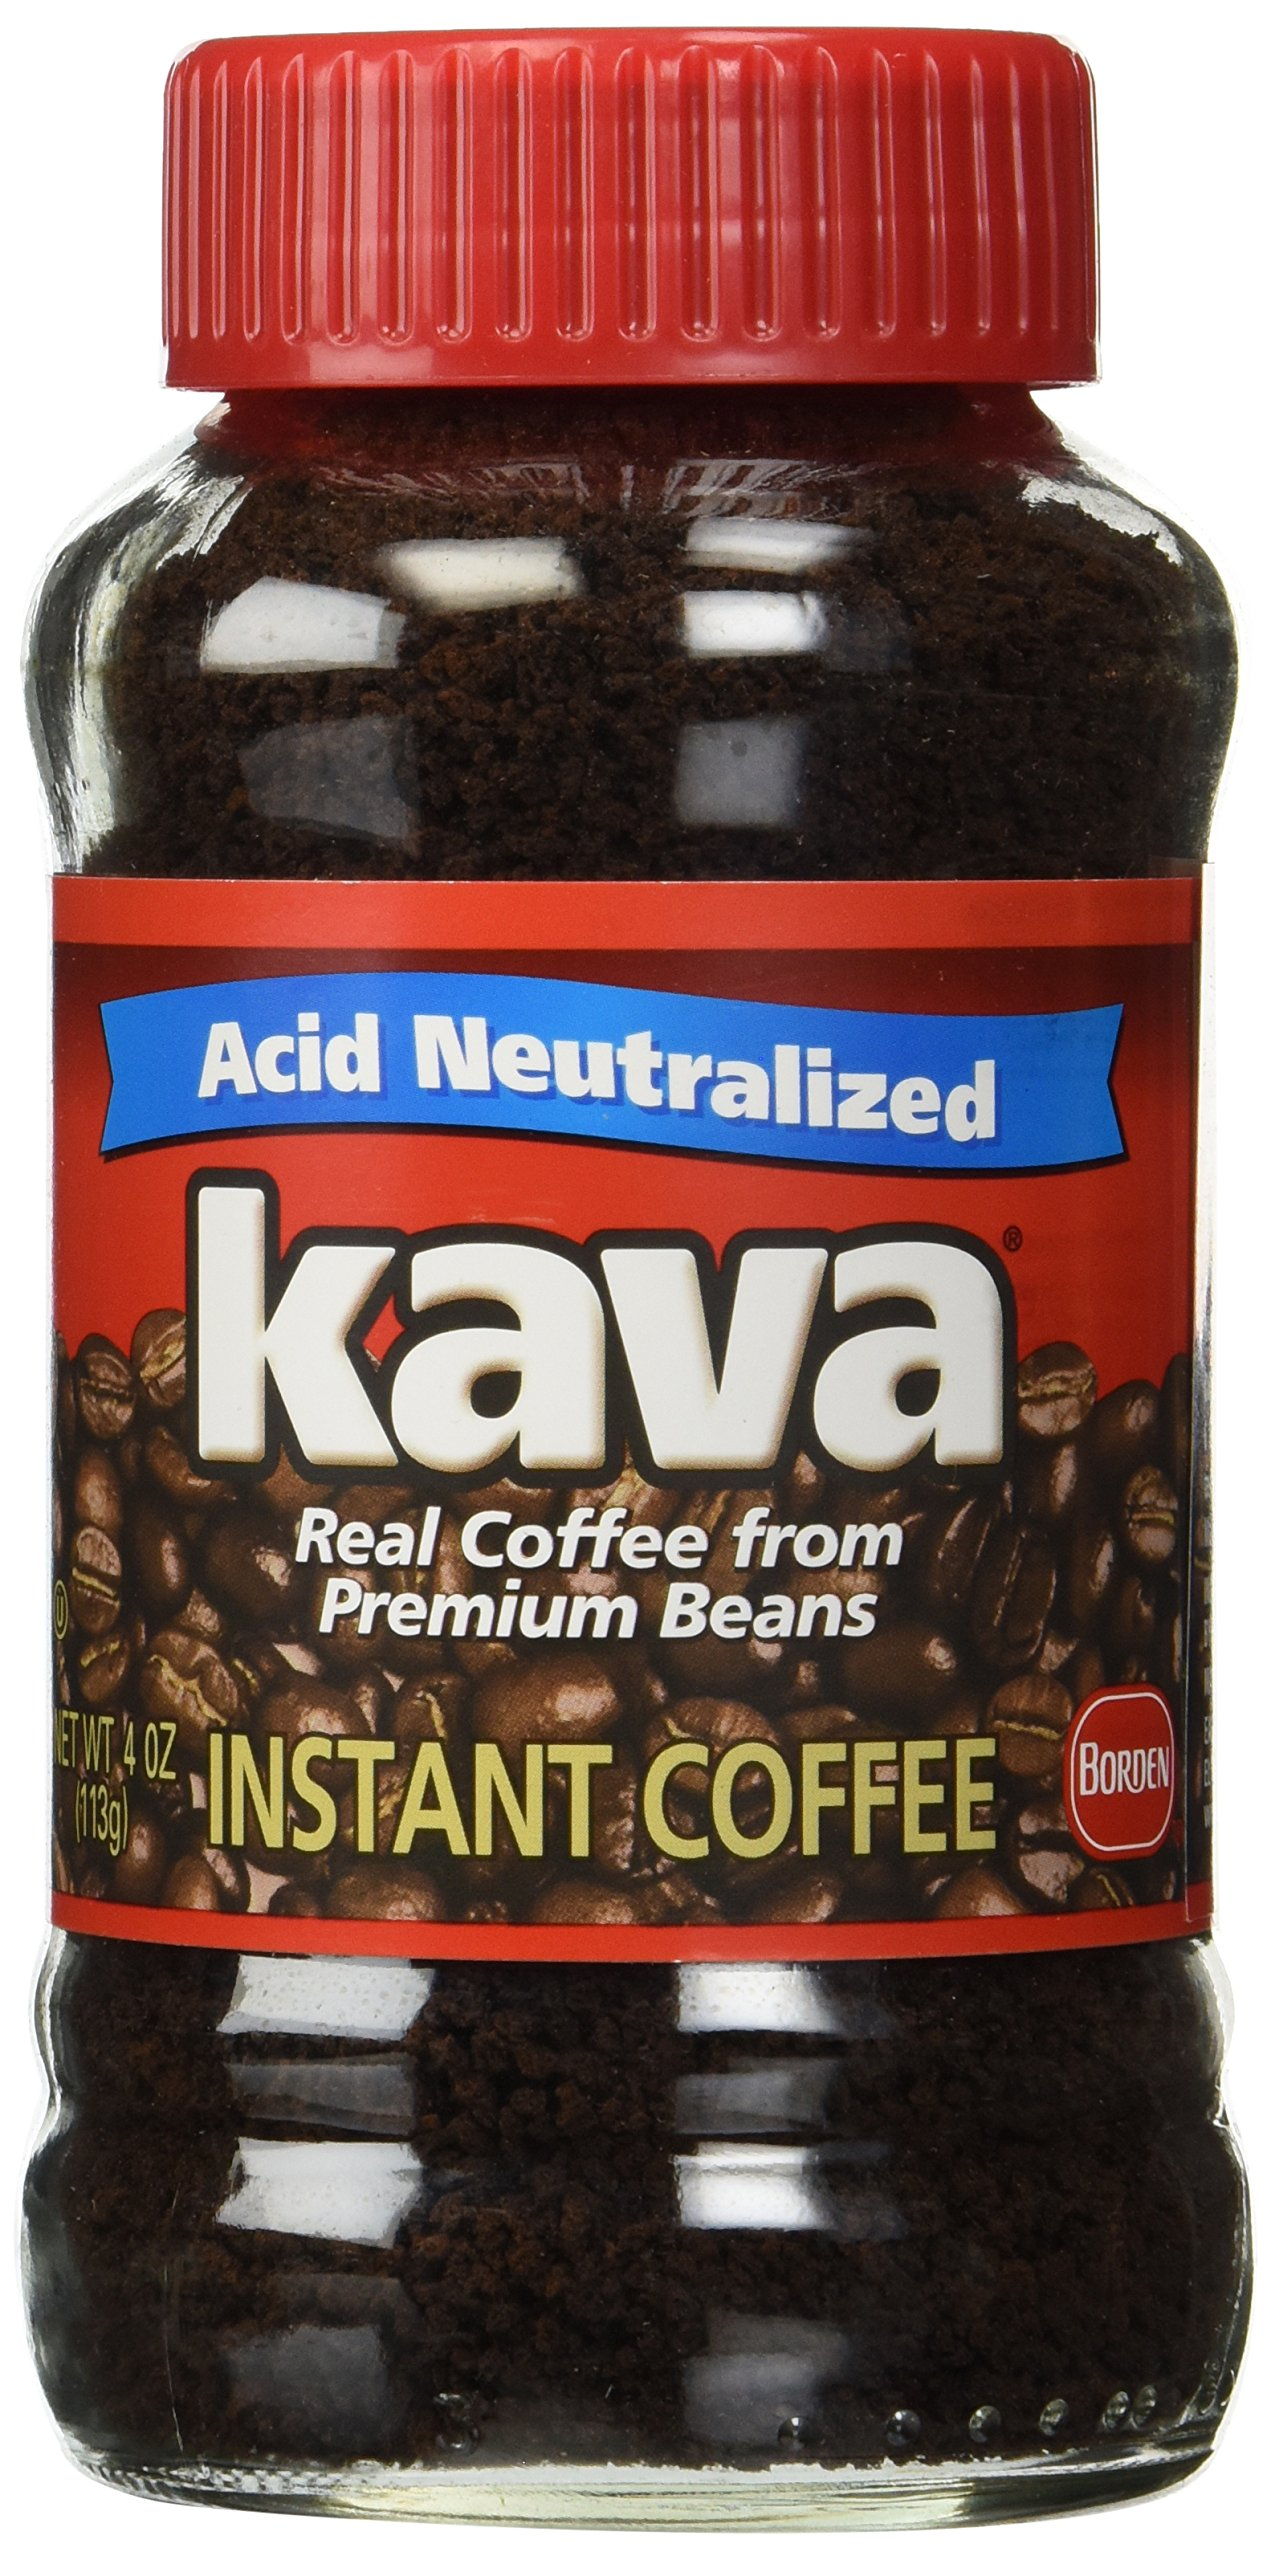 Kava Instant Coffee, Reduced Acid, 50% Less Acid per Cup, Real Coffee with Rich Full Bodied Taste, 4 oz Glass Jar (Pack of 3)